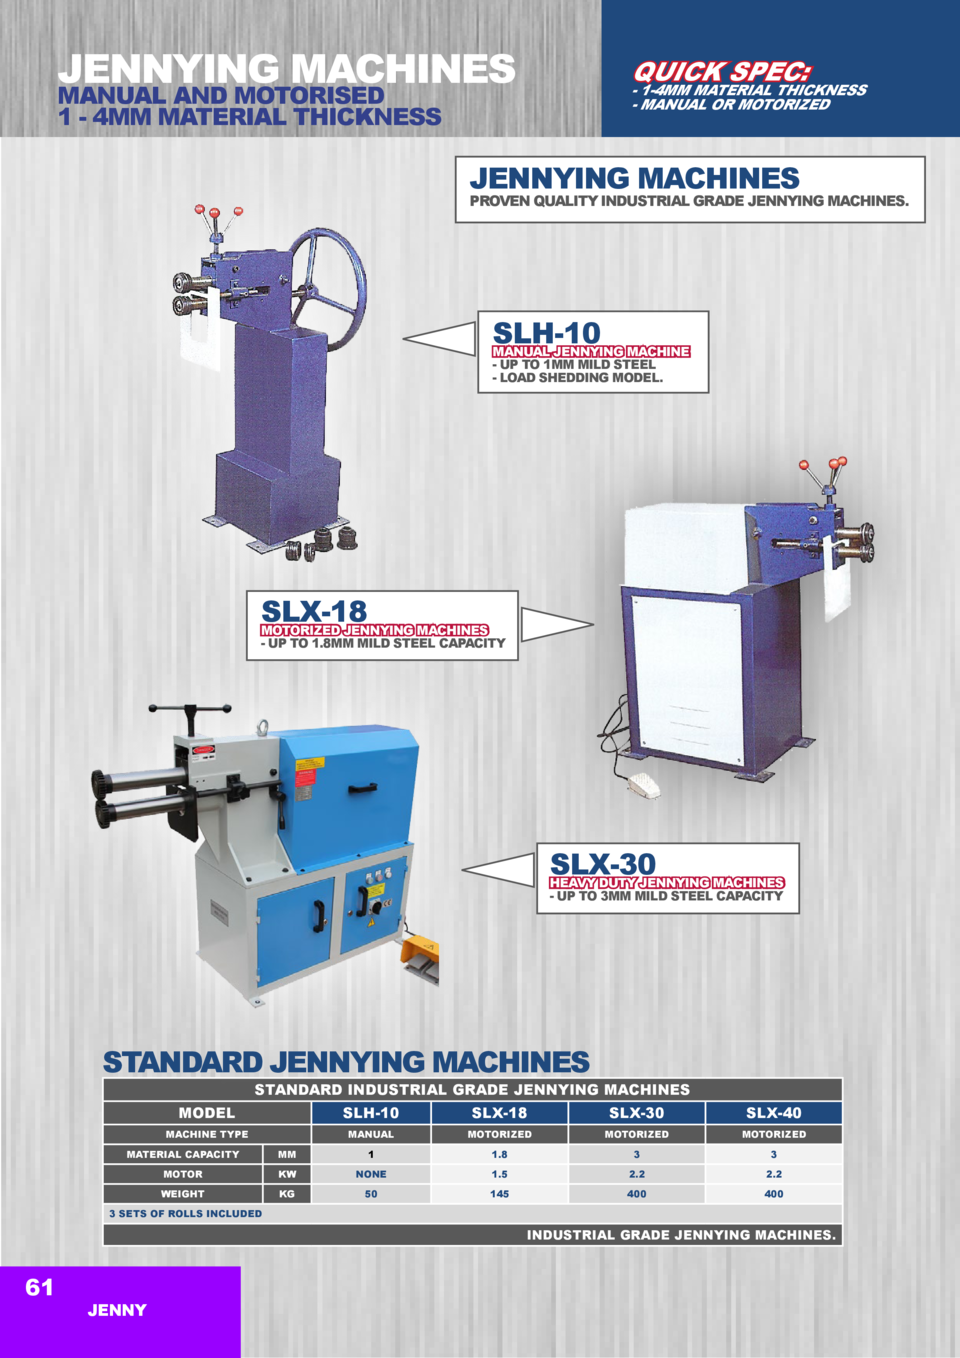 JENNYING MACHINES  QUICK SPEC   MANUAL AND MOTORISED 1 - 4MM MATERIAL THICKNESS  - 1-4MM MATERIAL THICKNESS - MANUAL OR MO...